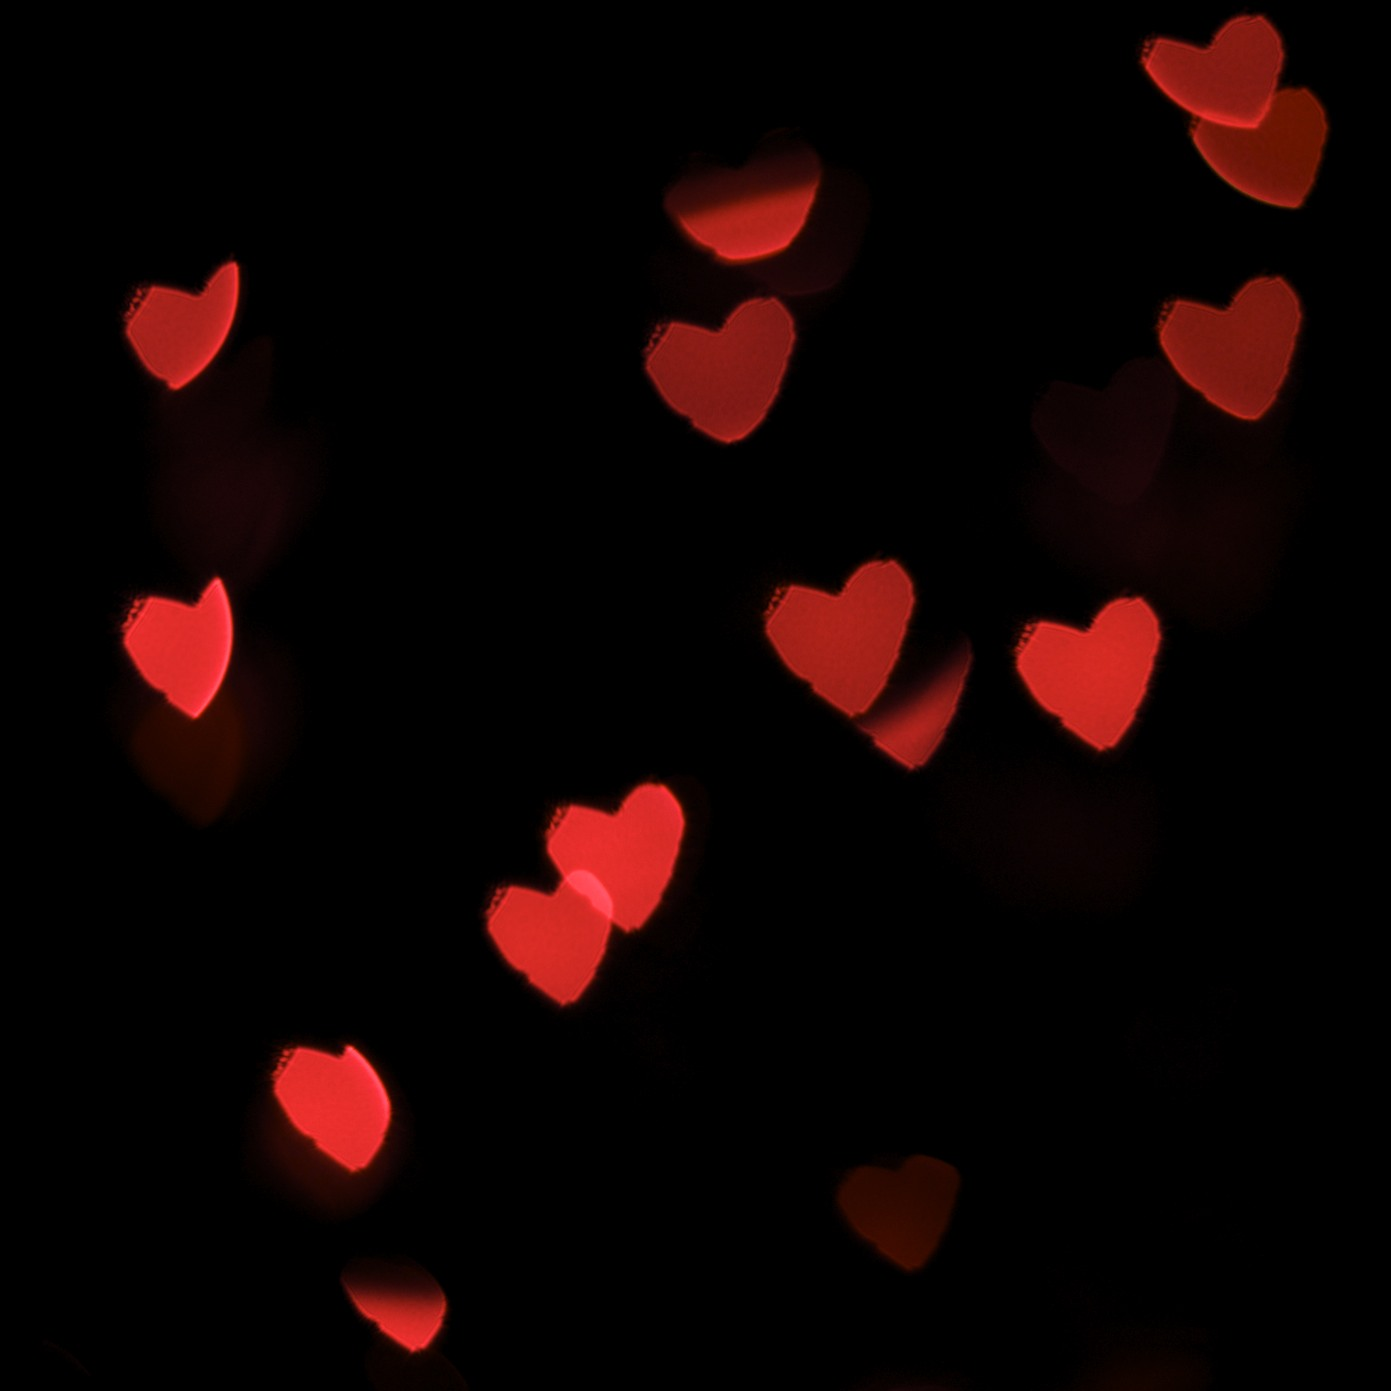 31/365 Heart-shaped bokeh